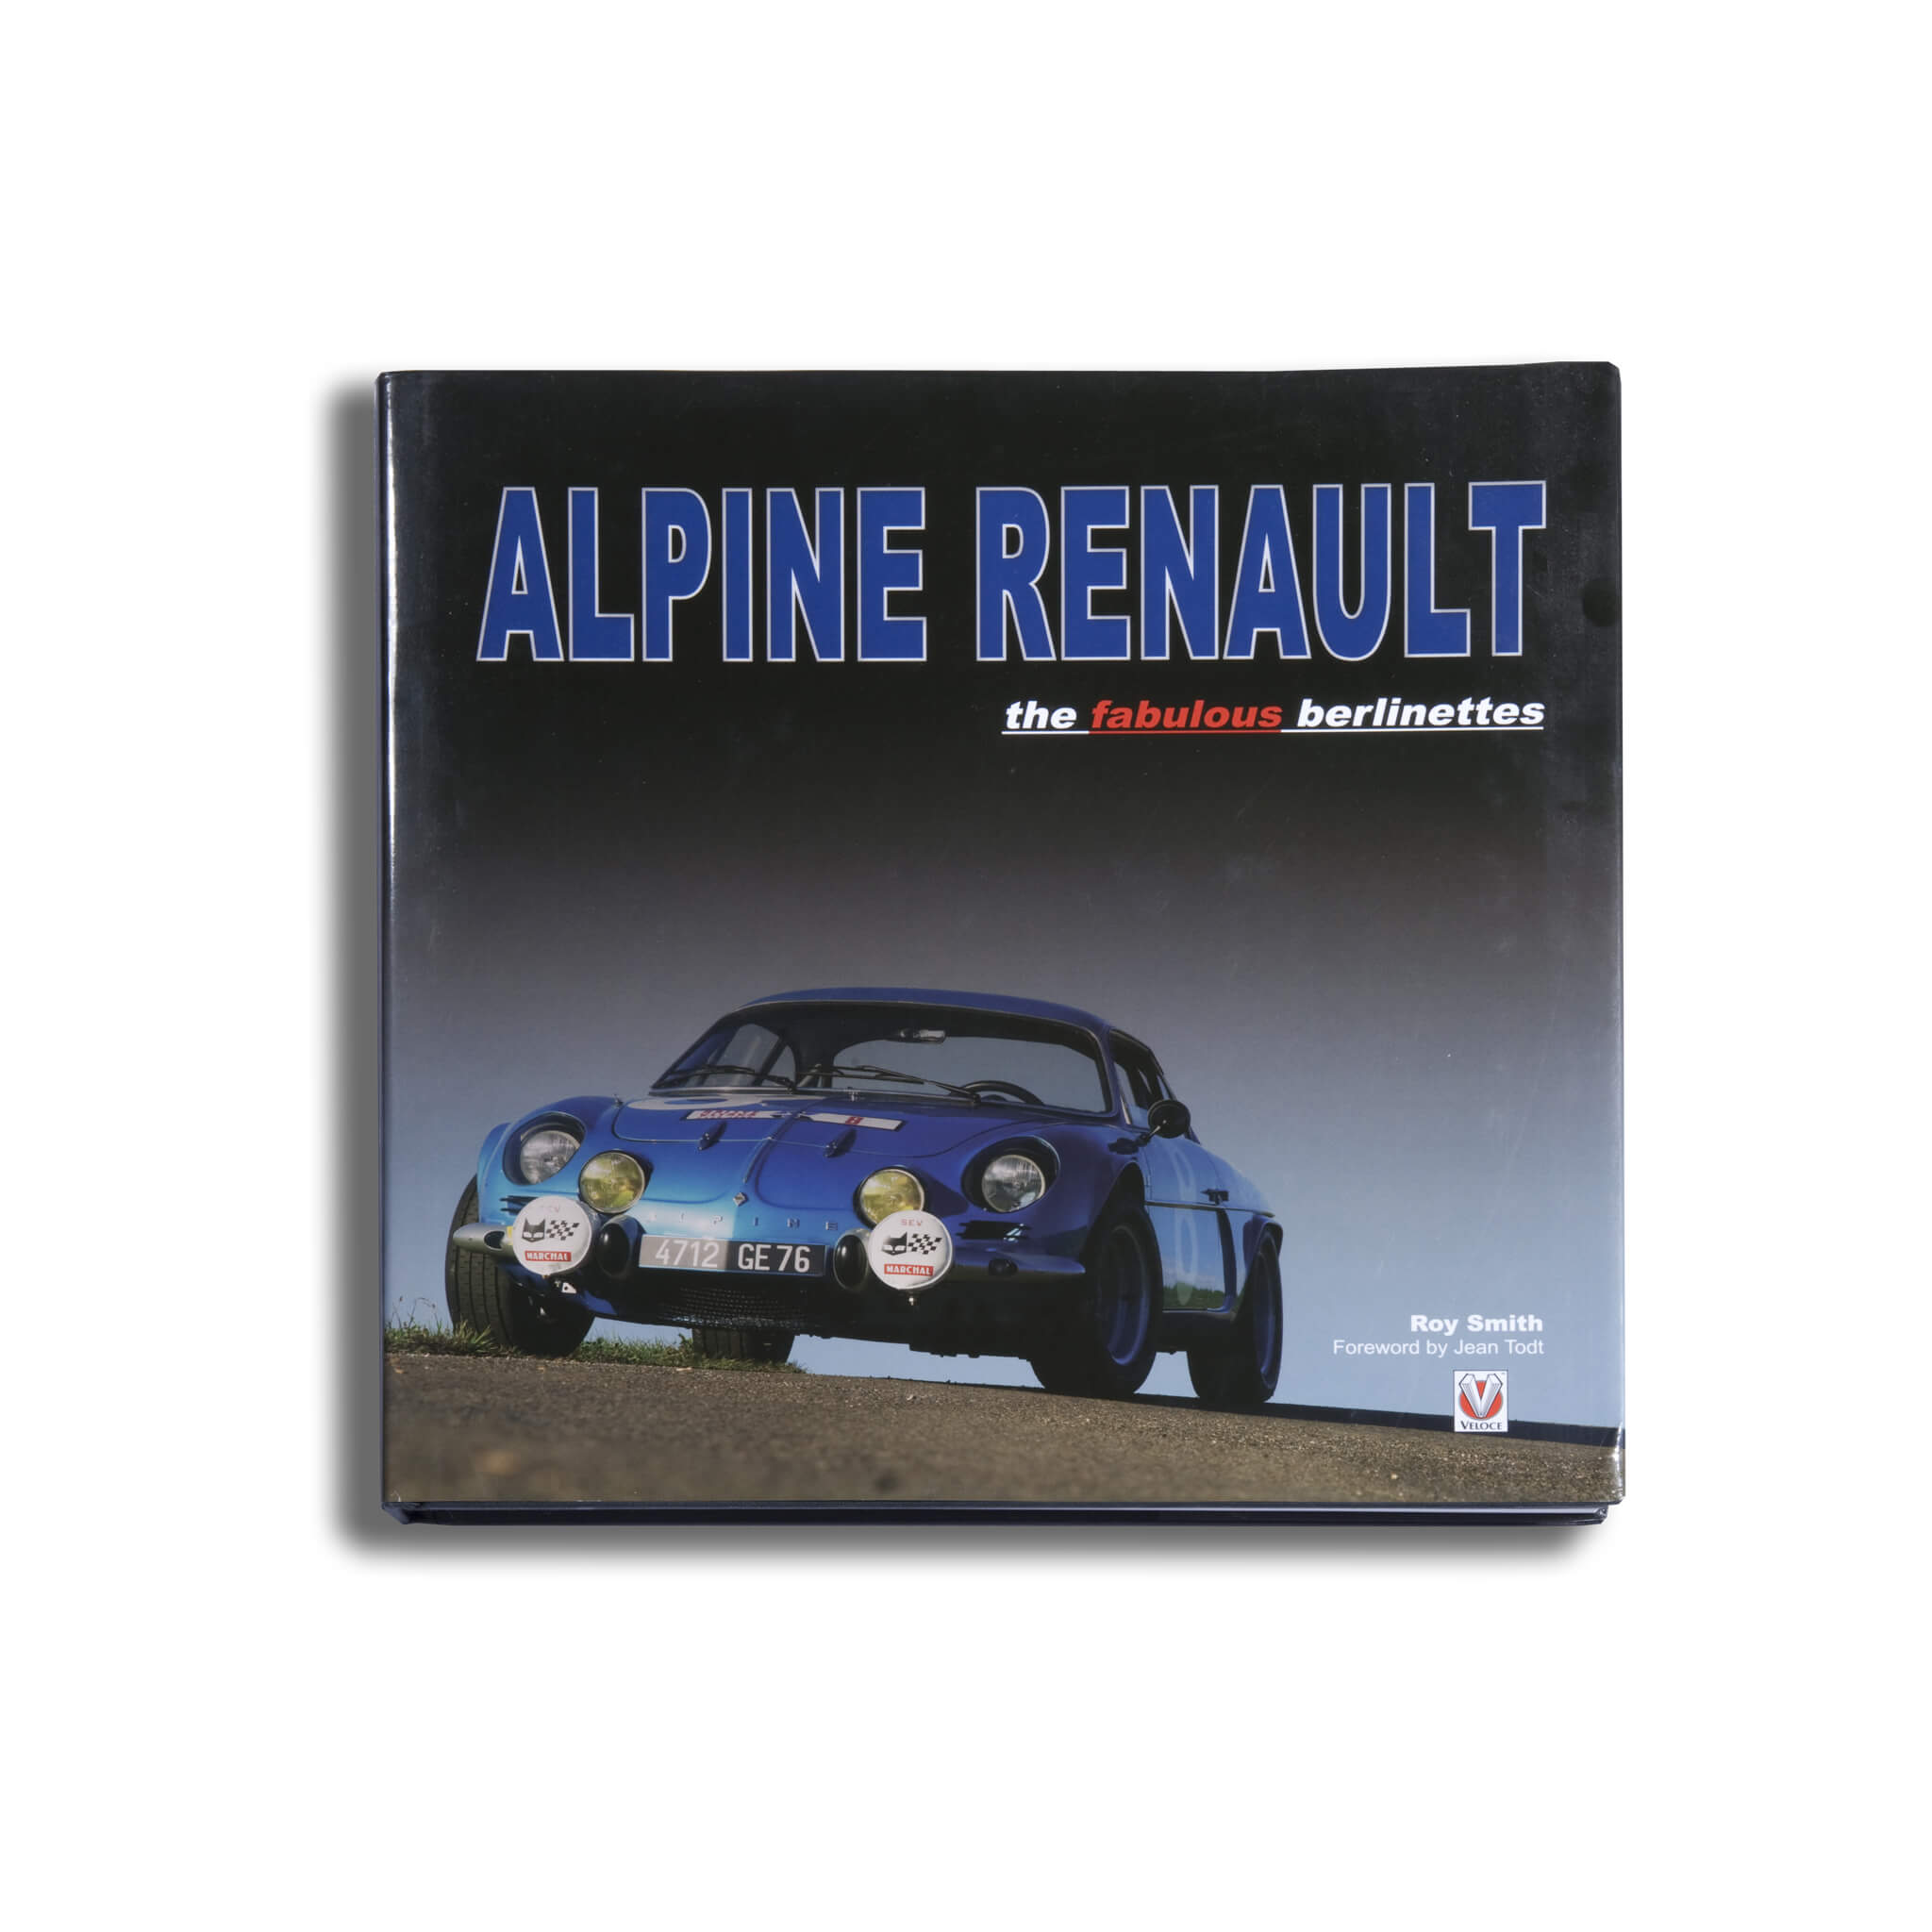 Alpine Renault: The Fabulous Berlinettes Book